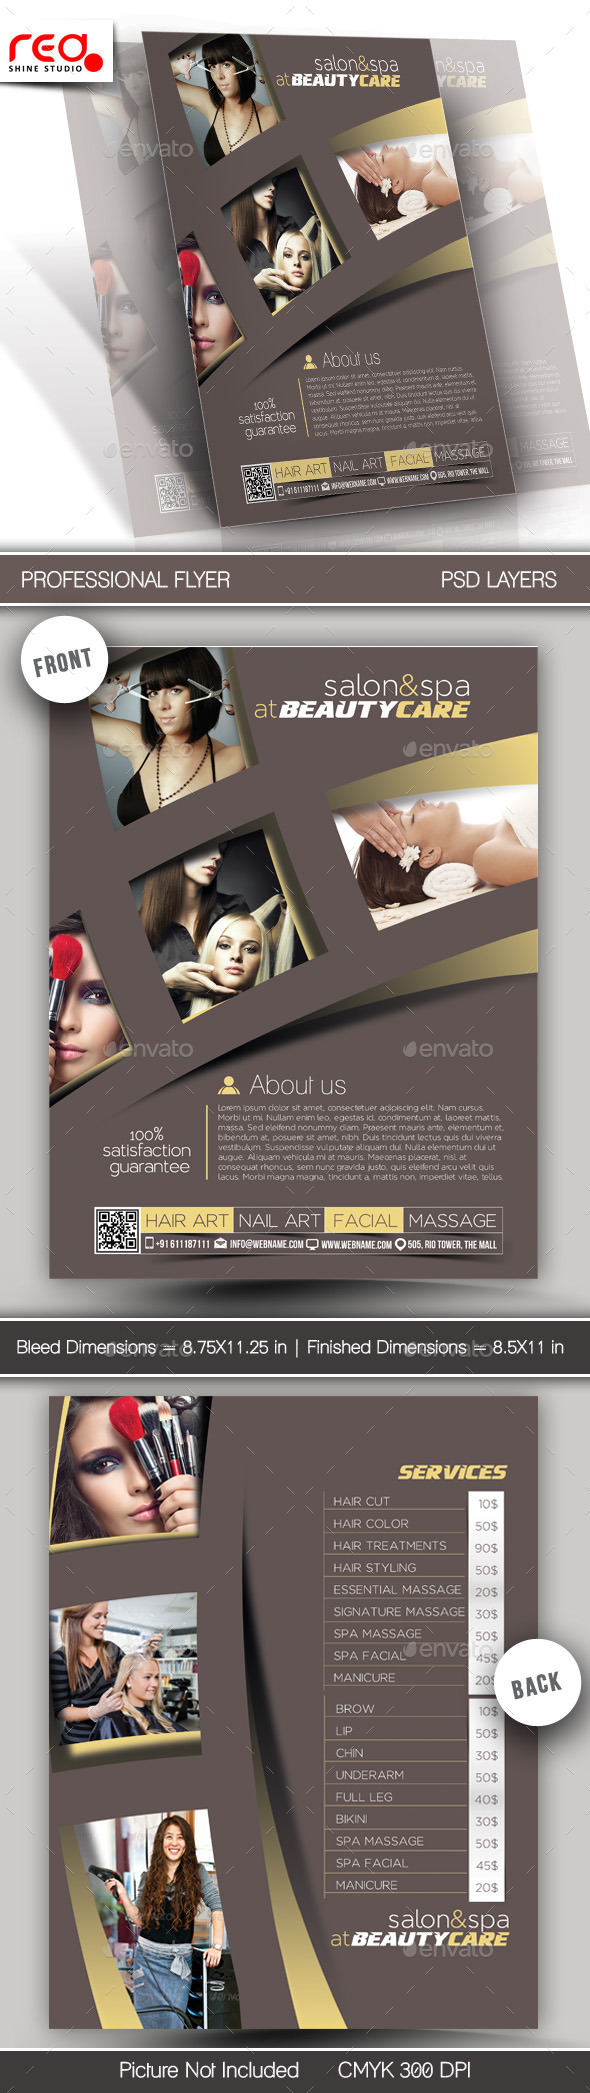 Salon & Spa Flyer & Poster Template  - Commerce Flyers